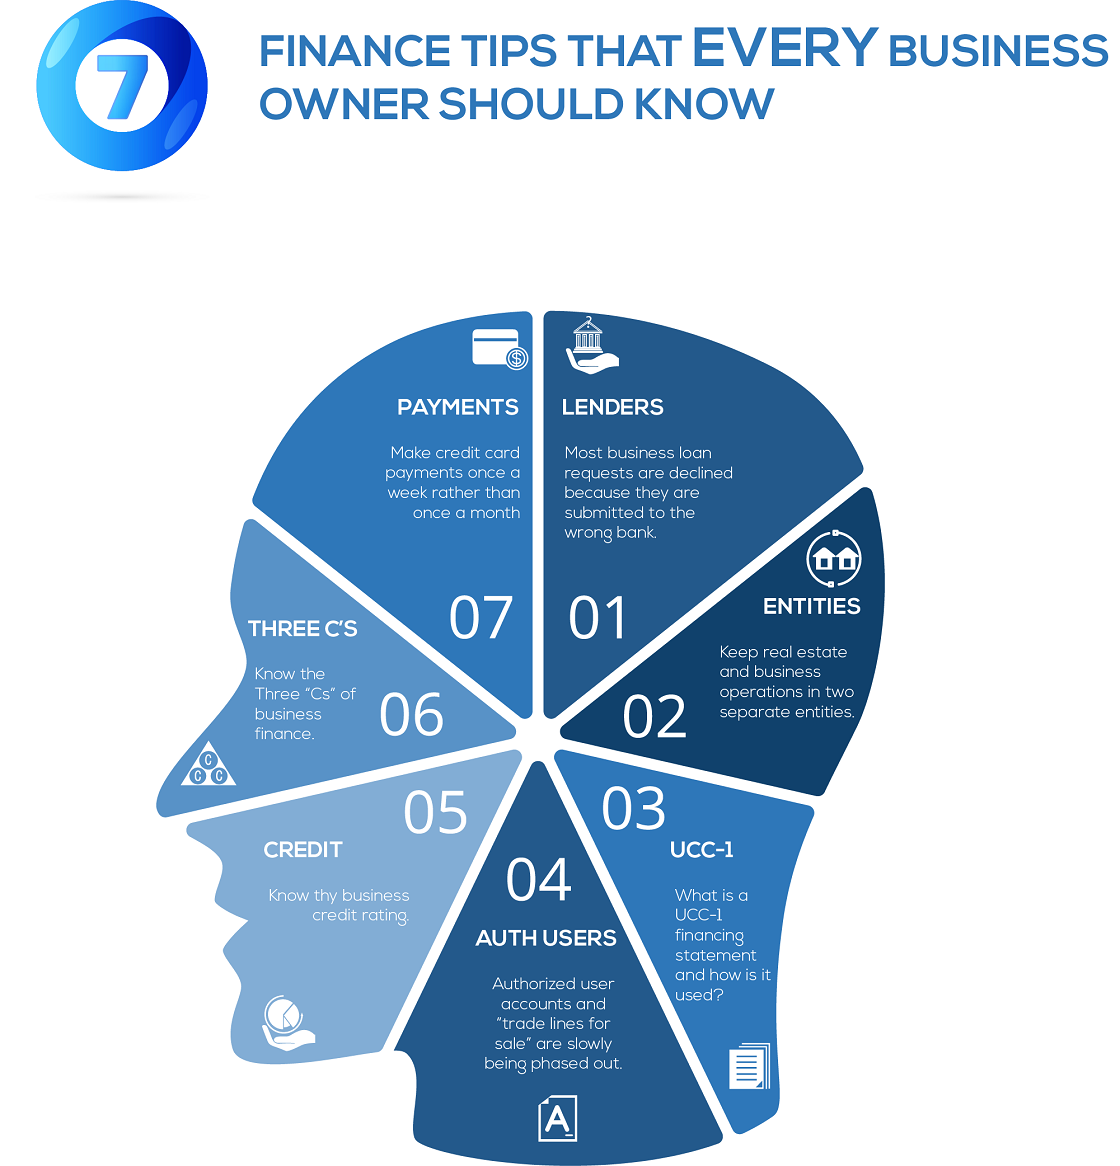 7 Business Finance Tips Every Business Owner Should Know